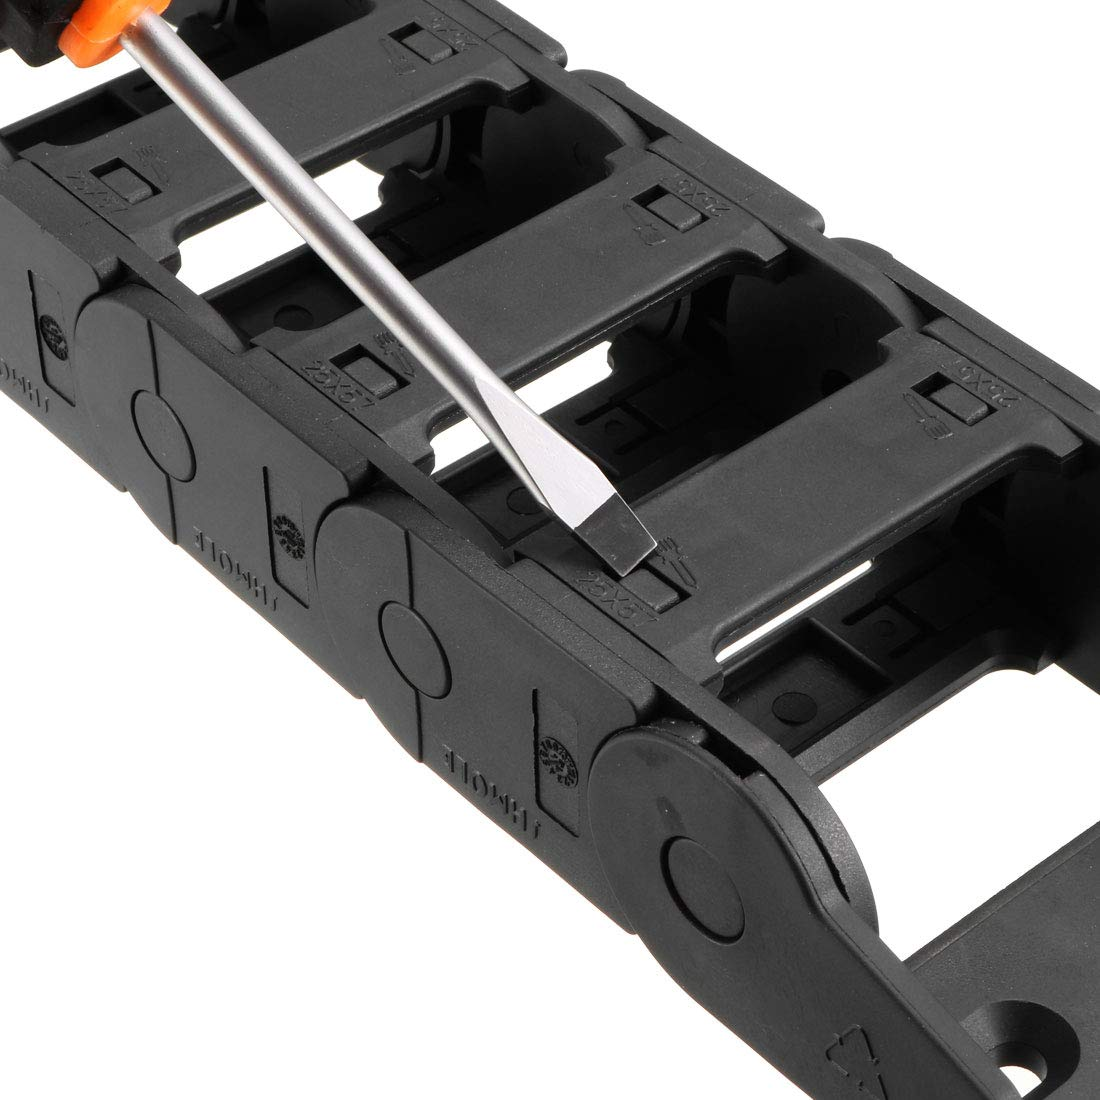 uxcell Drag Chain Cable Carrier Open Type with End Connectors R100 35X100mm 1 Meter Plastic for Electrical CNC Router Machines Black